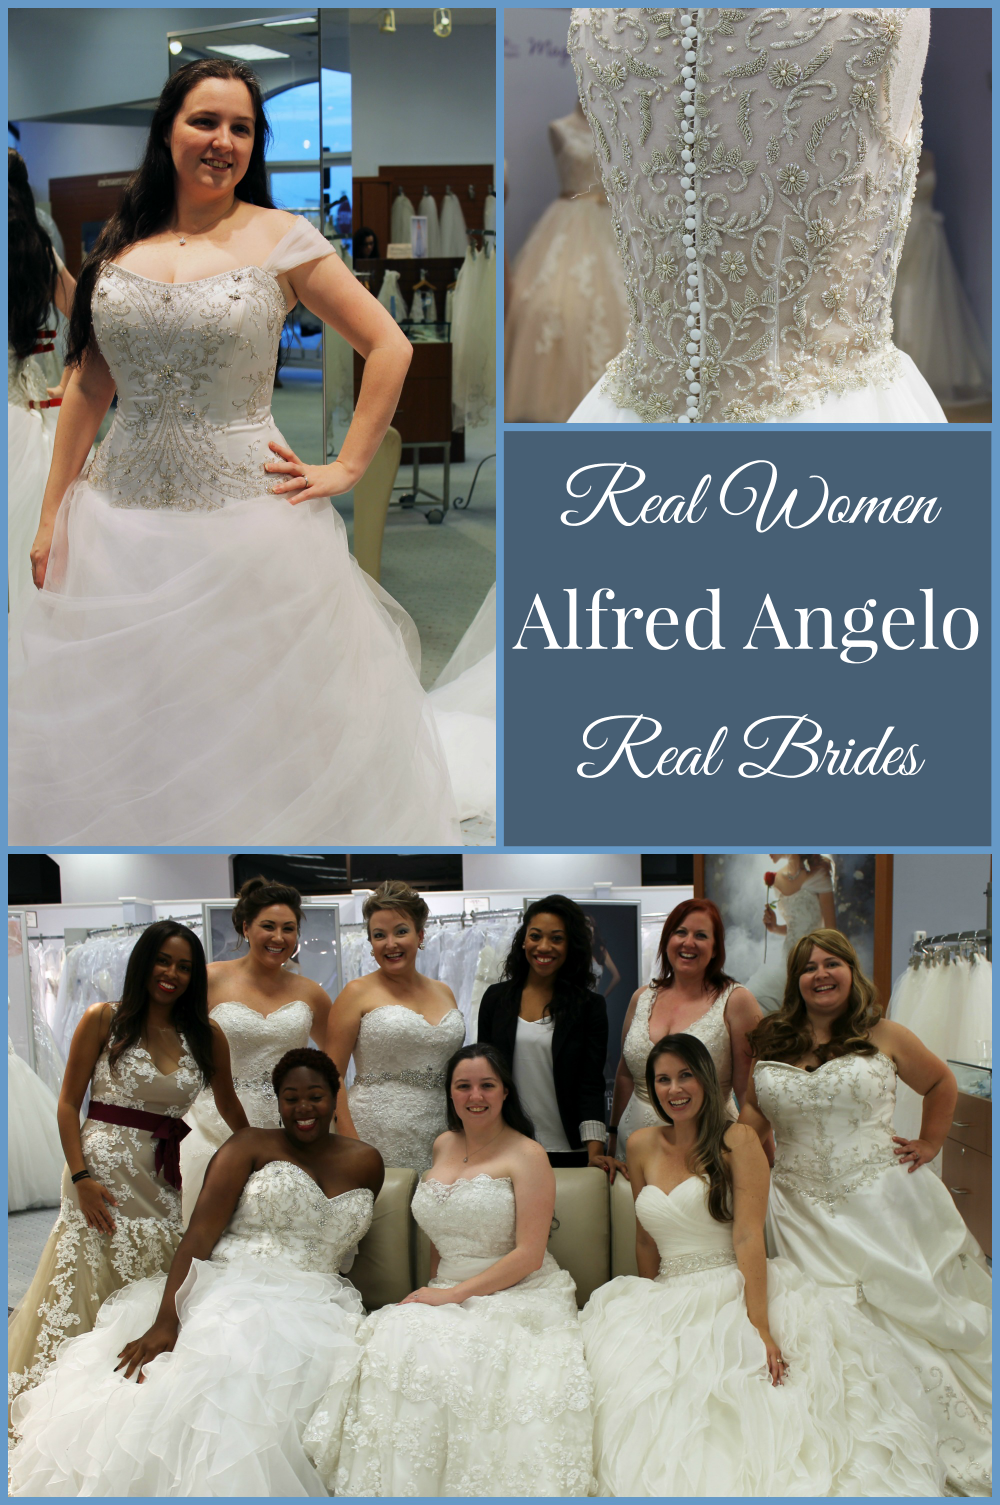 An amazing experience trying on beautiful Alfred Angelo wedding gowns.